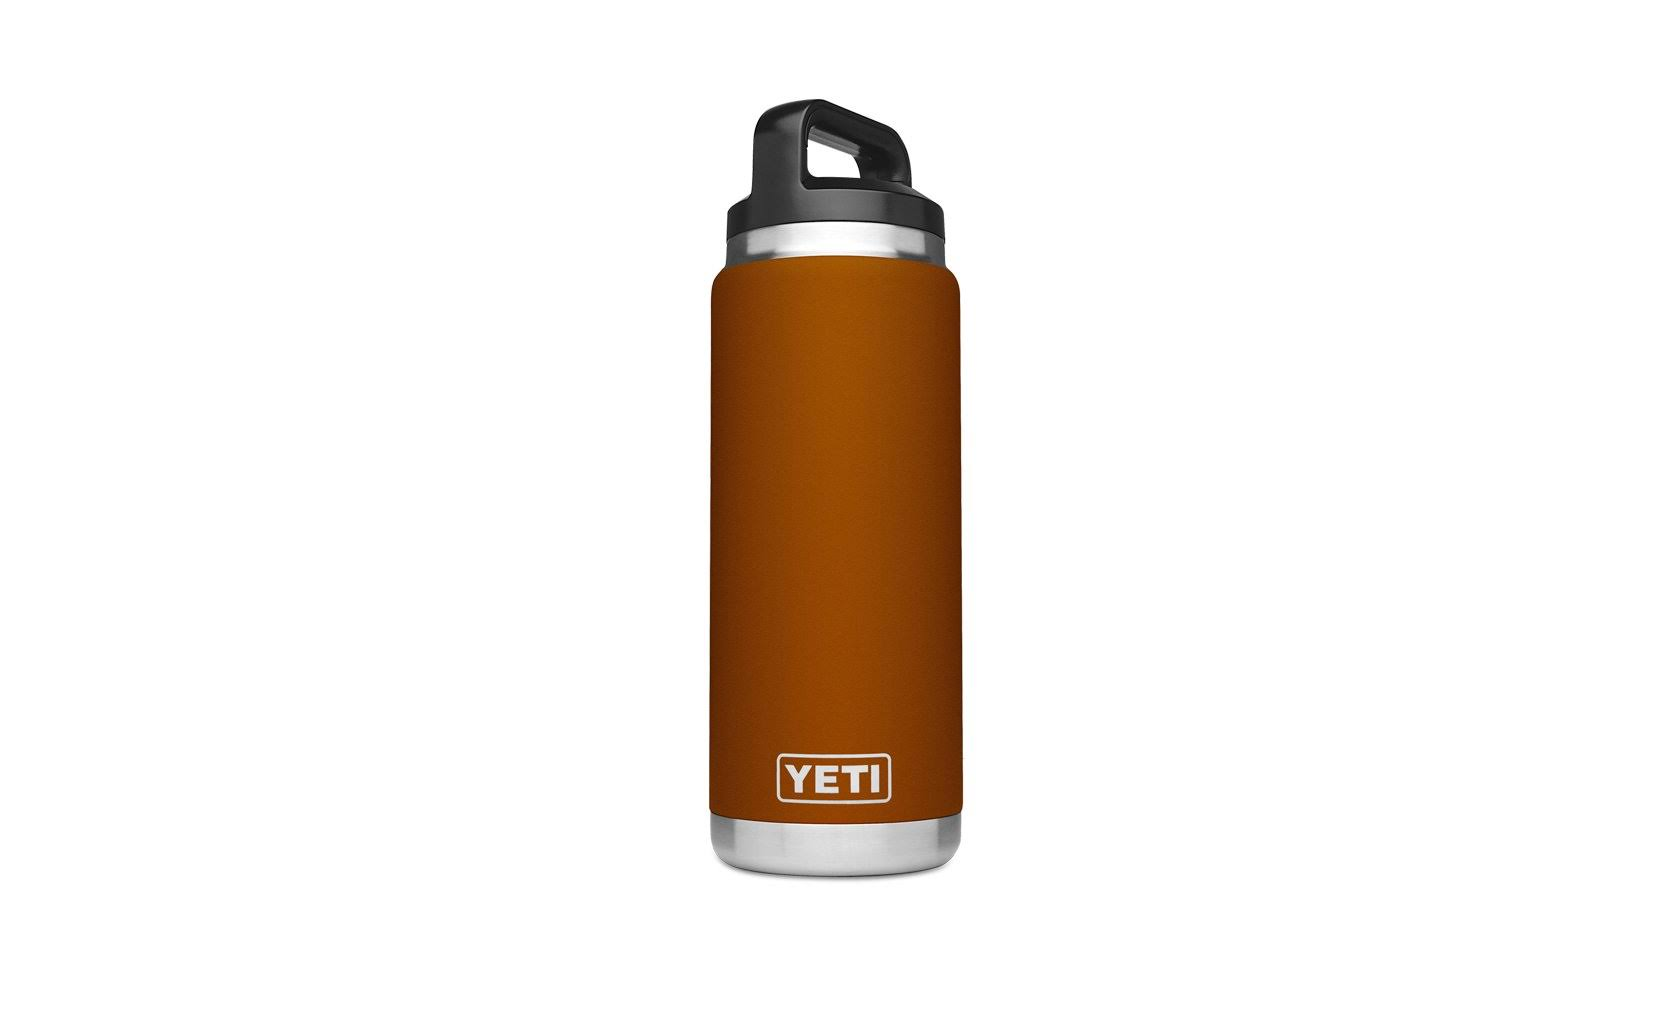 Yeti Stainless Steel Insulated Rambler Bottle - 26oz